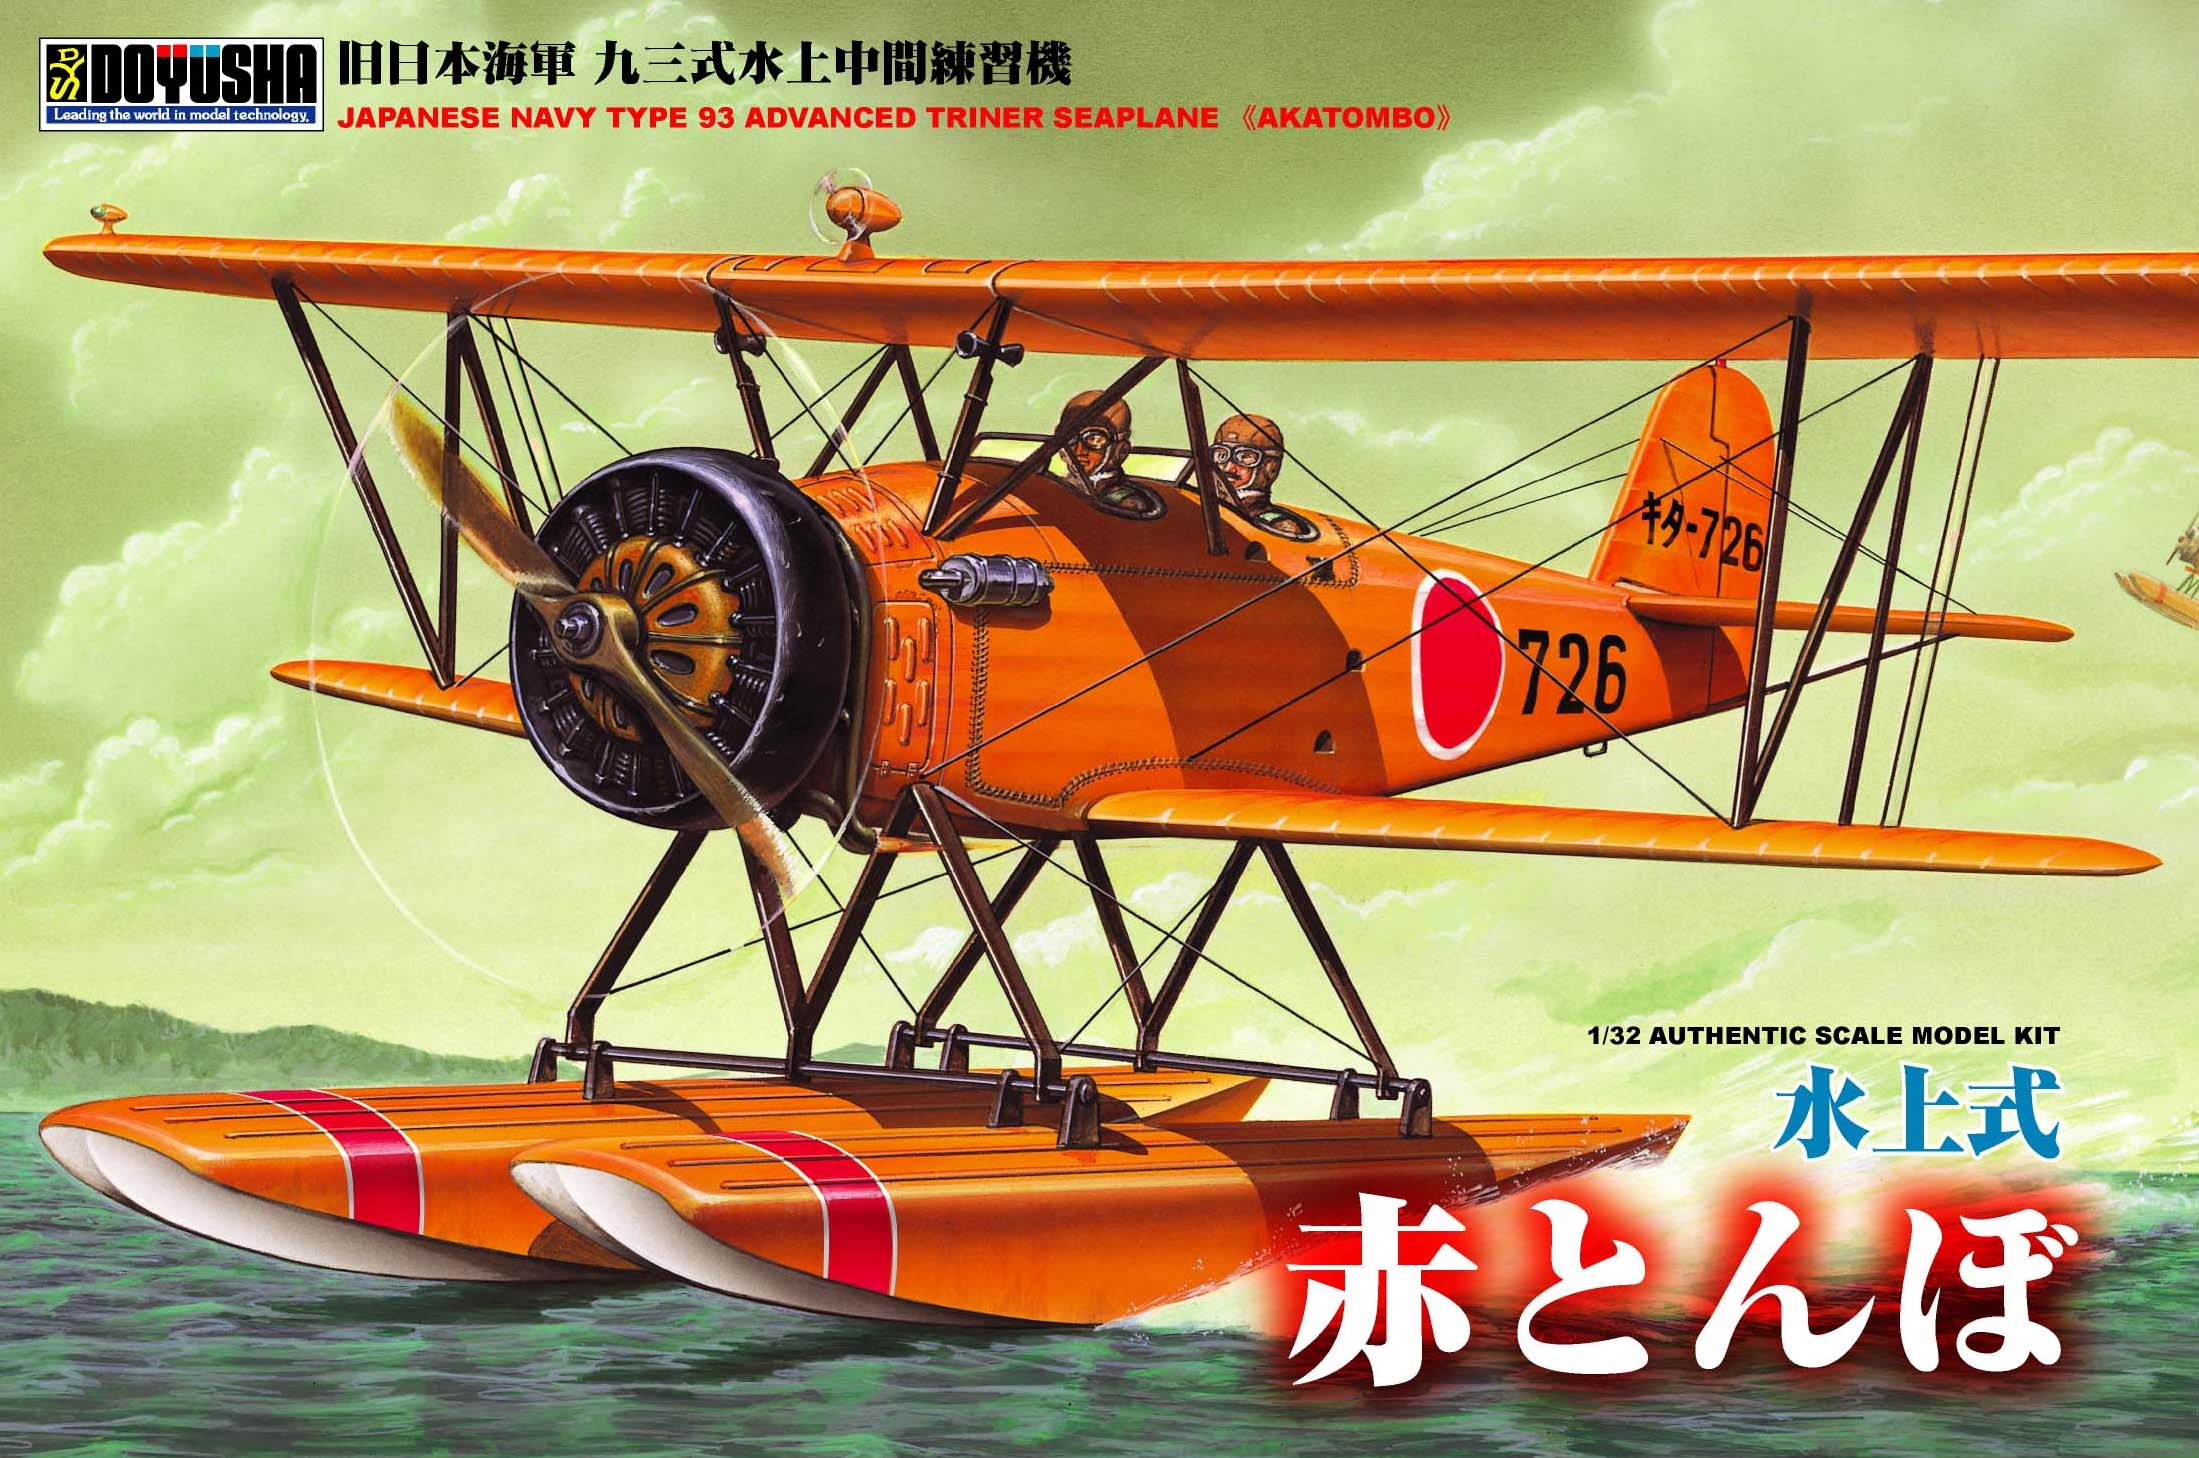 Doyusha 1/32 Japanese Navy Advanced Trainer Seaplane Type